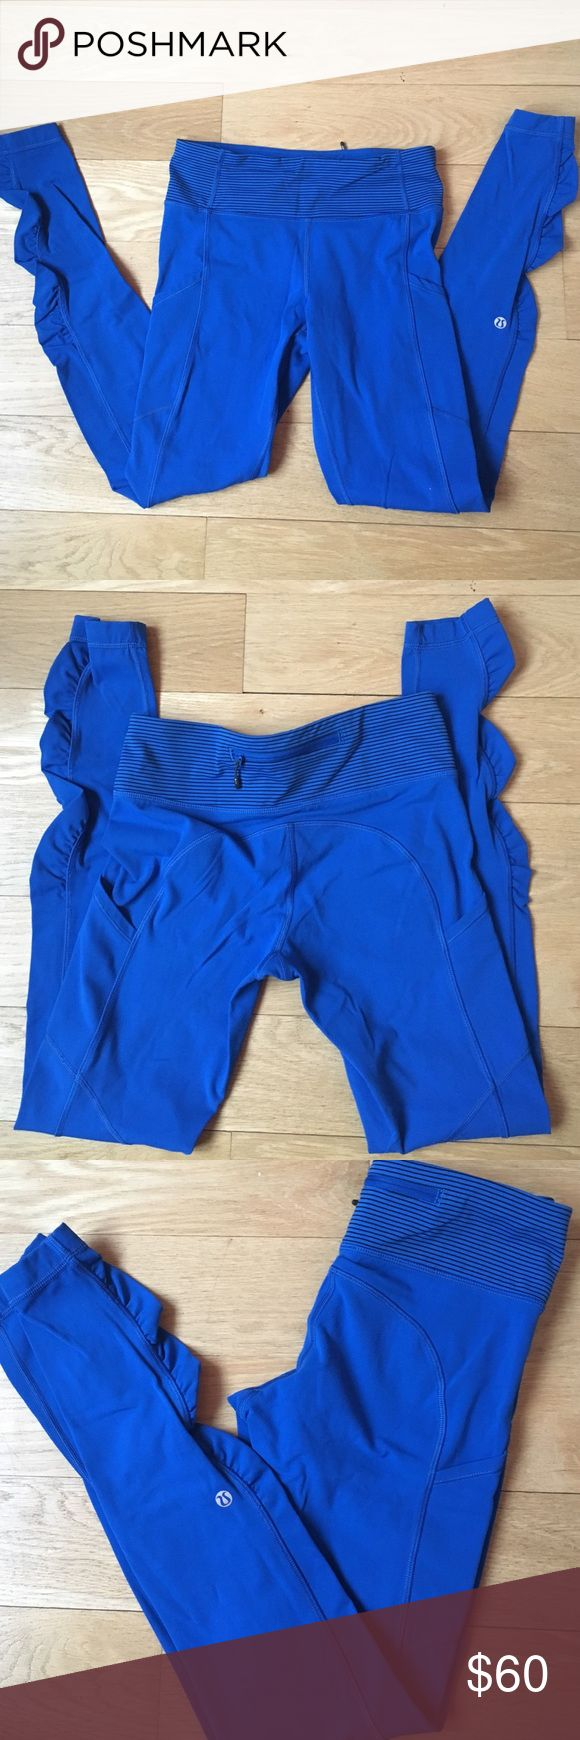 Lululemon leggings in size 4 Cobalt blue Lululemon leggings in size 4. Mild pilling in the butt area and behind the ankles. Otherwise in great condition! lululemon athletica Pants Leggings